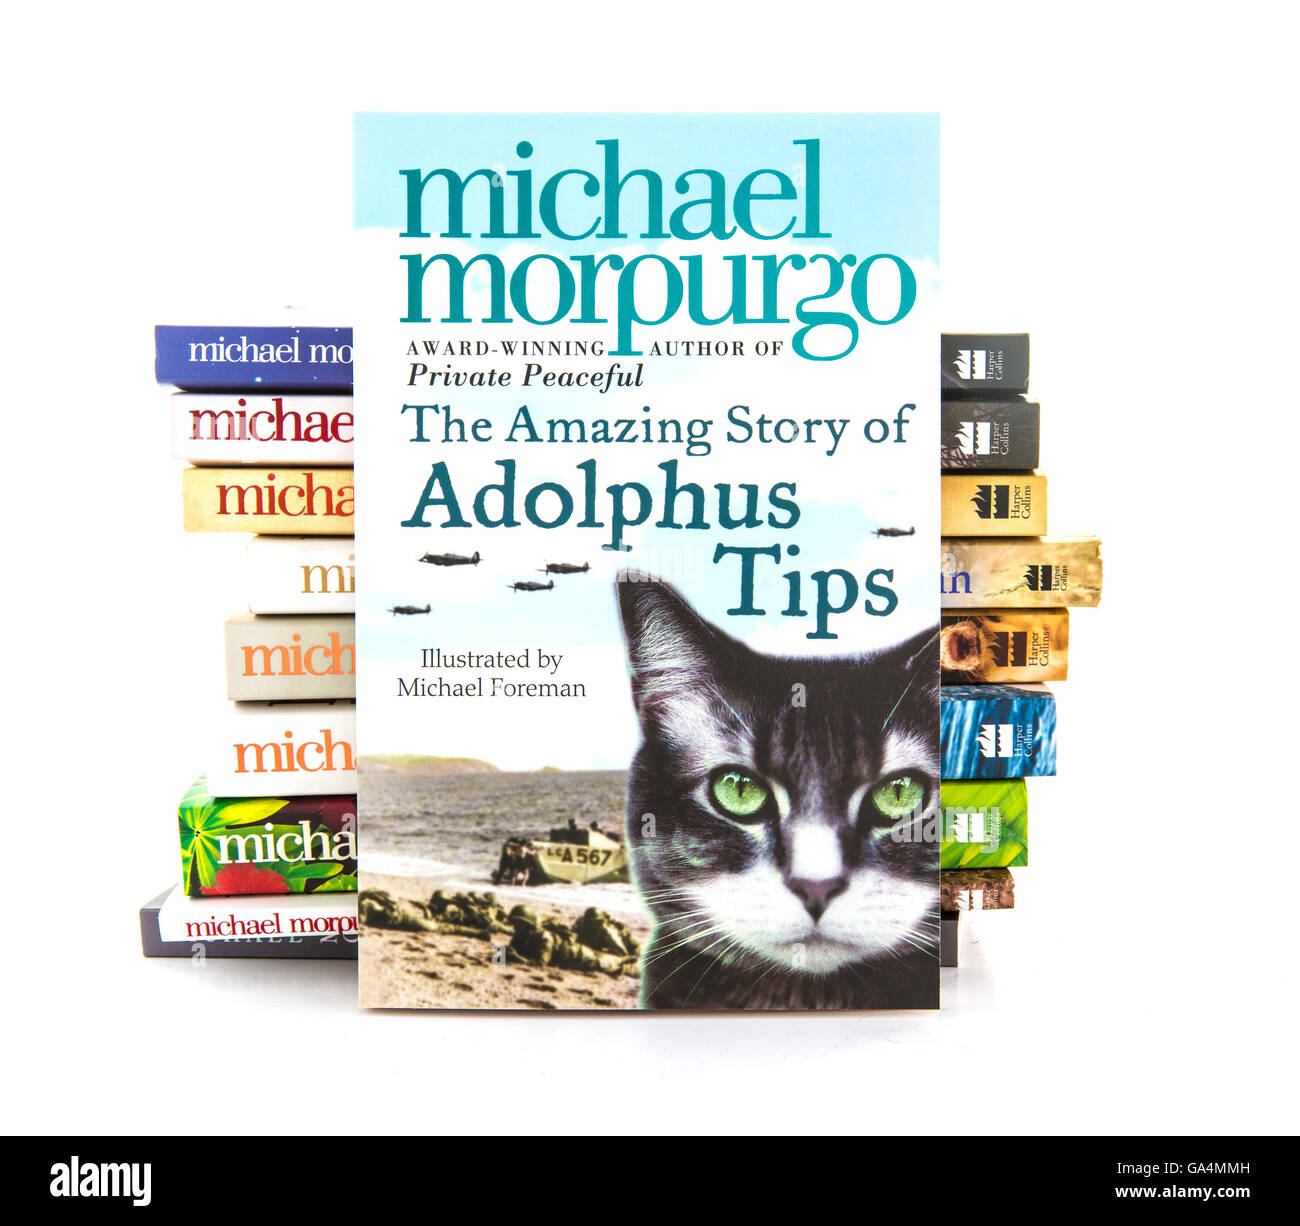 The Amazing Story Of Adolphus Tips by Michael Morpurgo on a white background - Stock Image